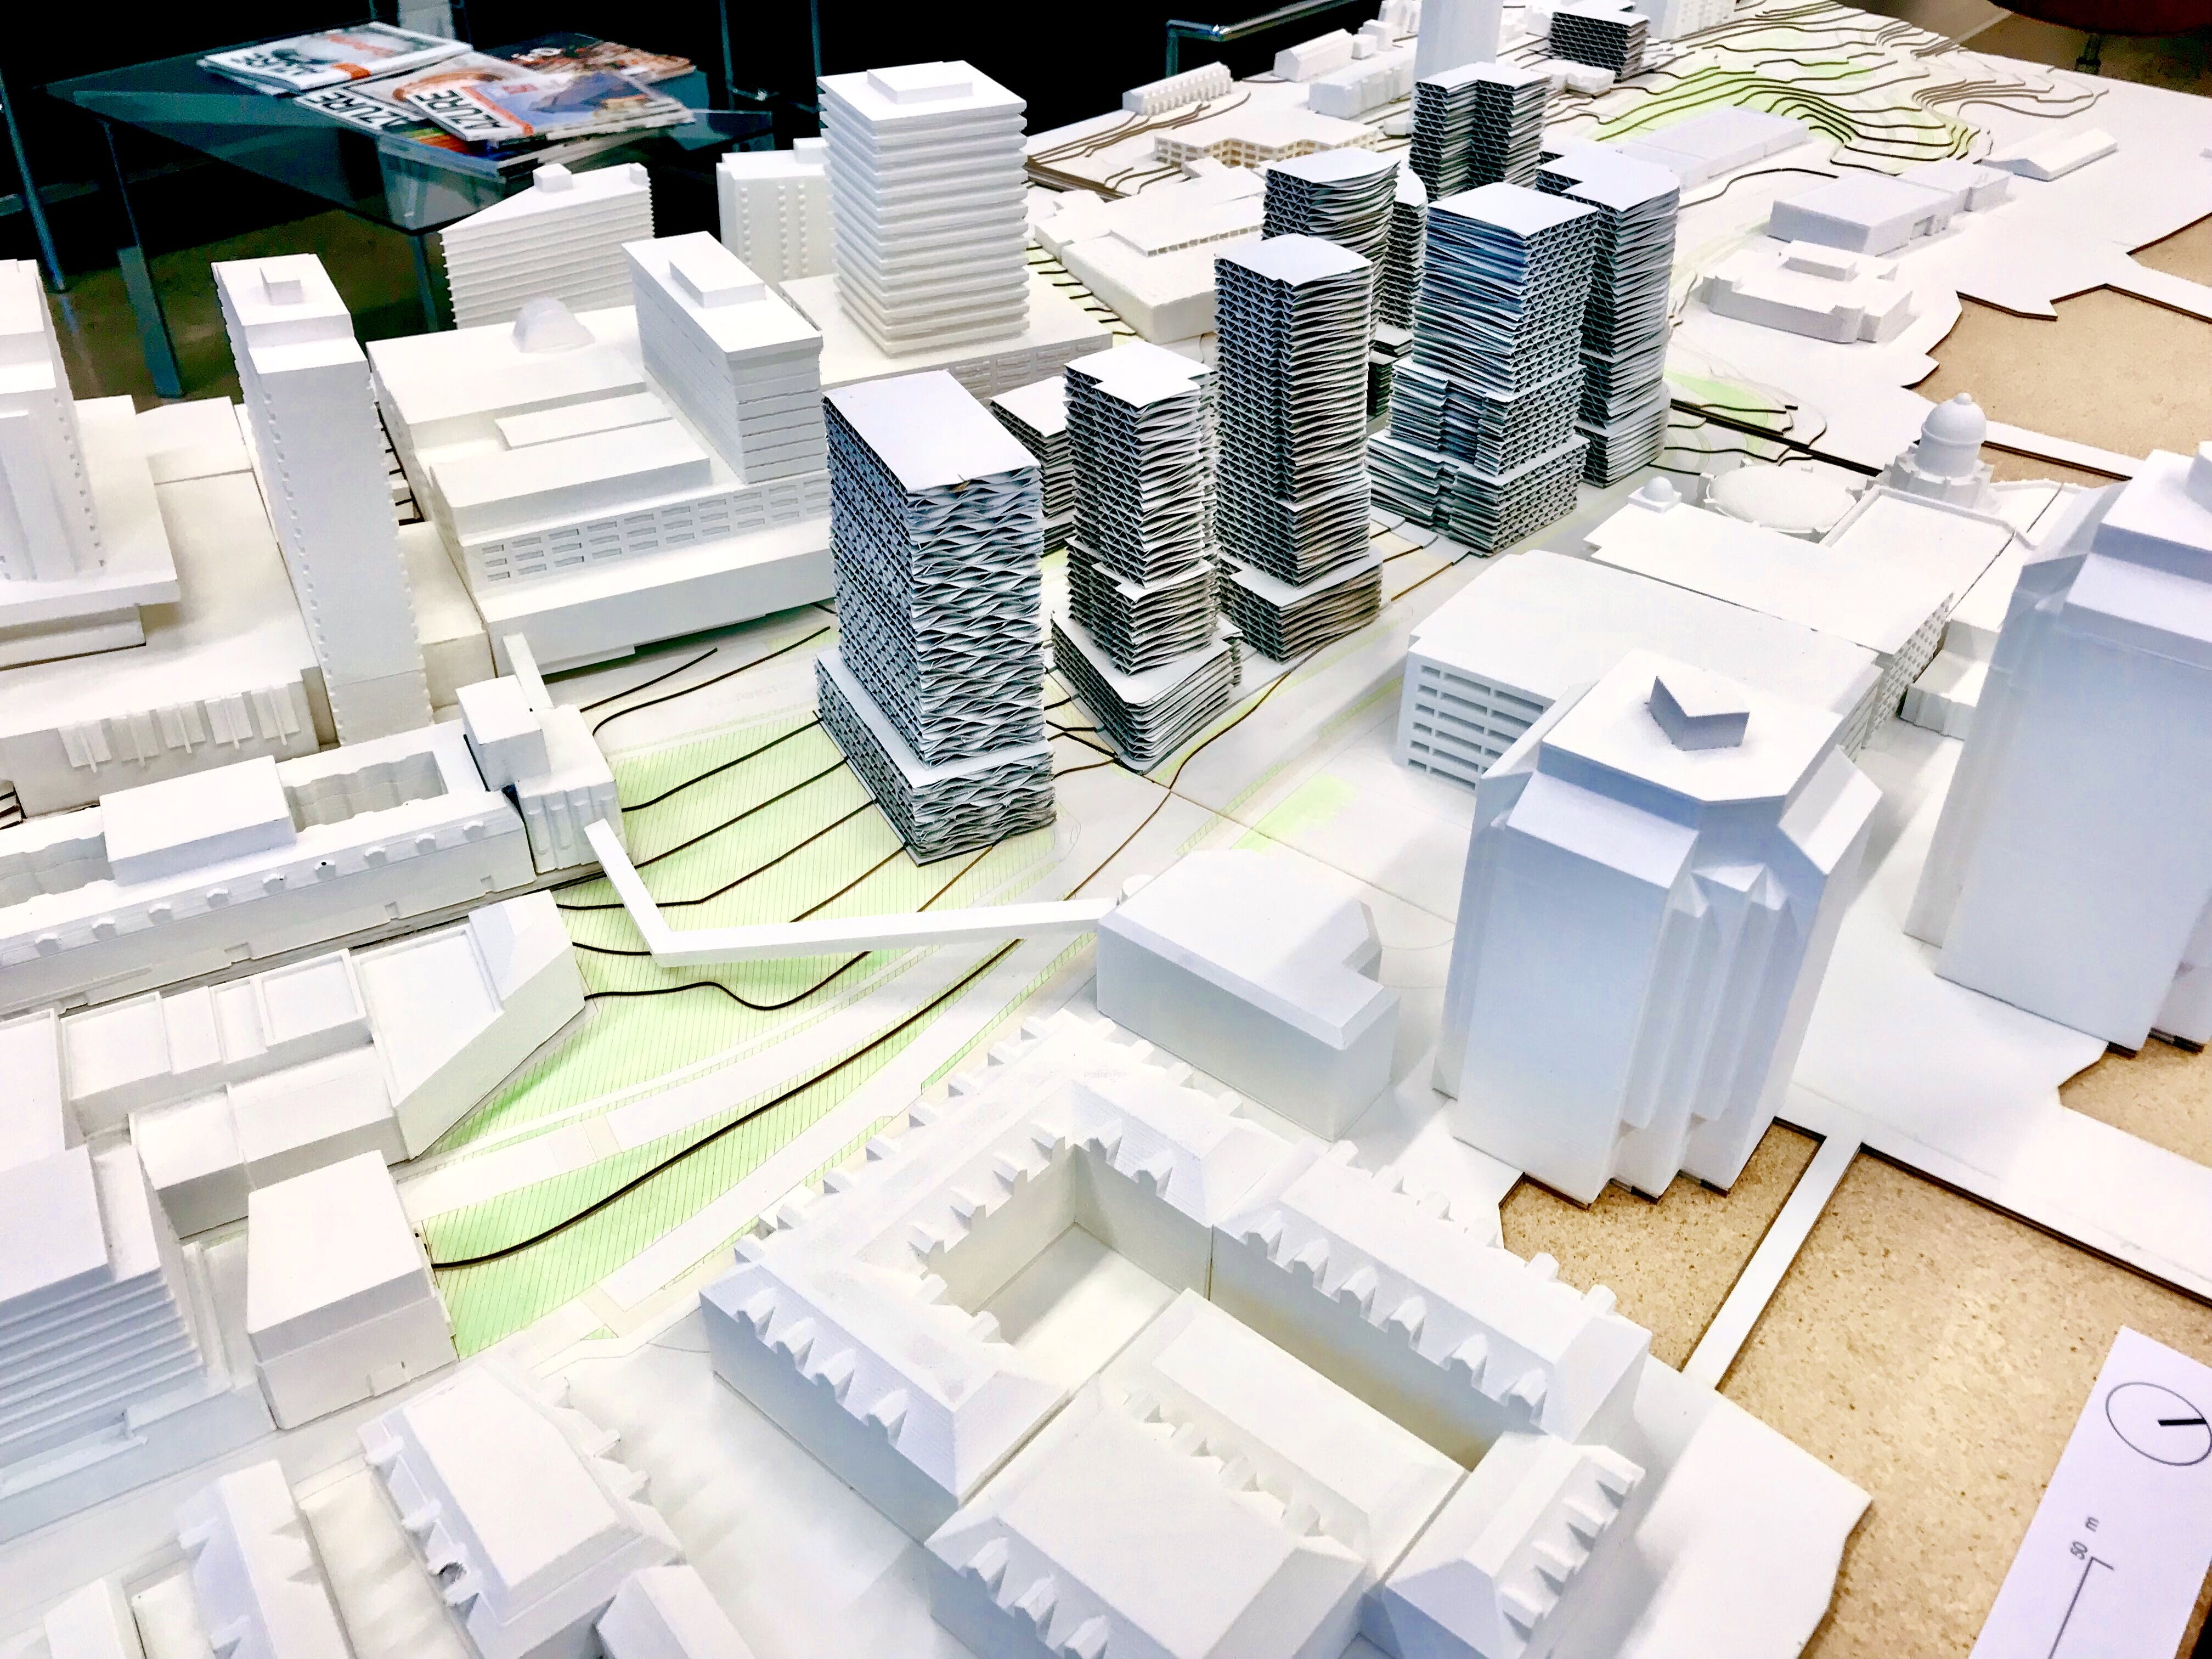 Model of Cogswell District